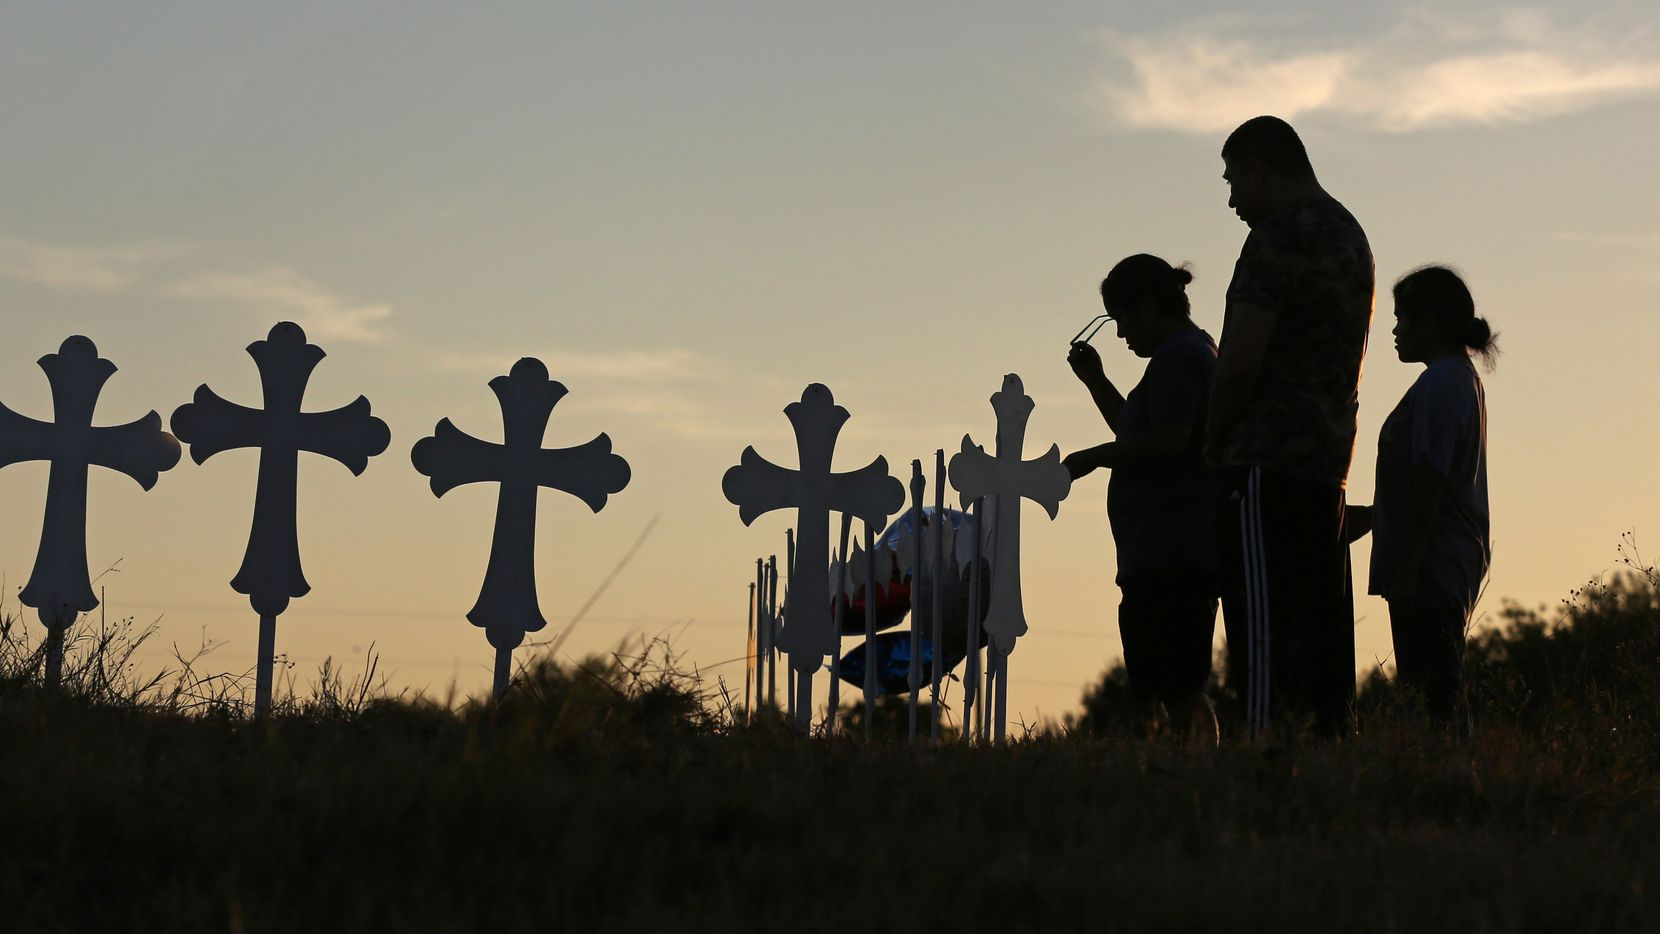 Irene and Kenneth Hernandez and their daughter Miranda Hernandez say a prayer in front of some of the 26 crosses placed in a field in Sutherland Springs, Texas to honor those who were killed in Sunday's mass shooting, when a gunman opened fire at a Baptist church in the small town southeast of San Antonio. Photographed on Monday, November 6, 2017.